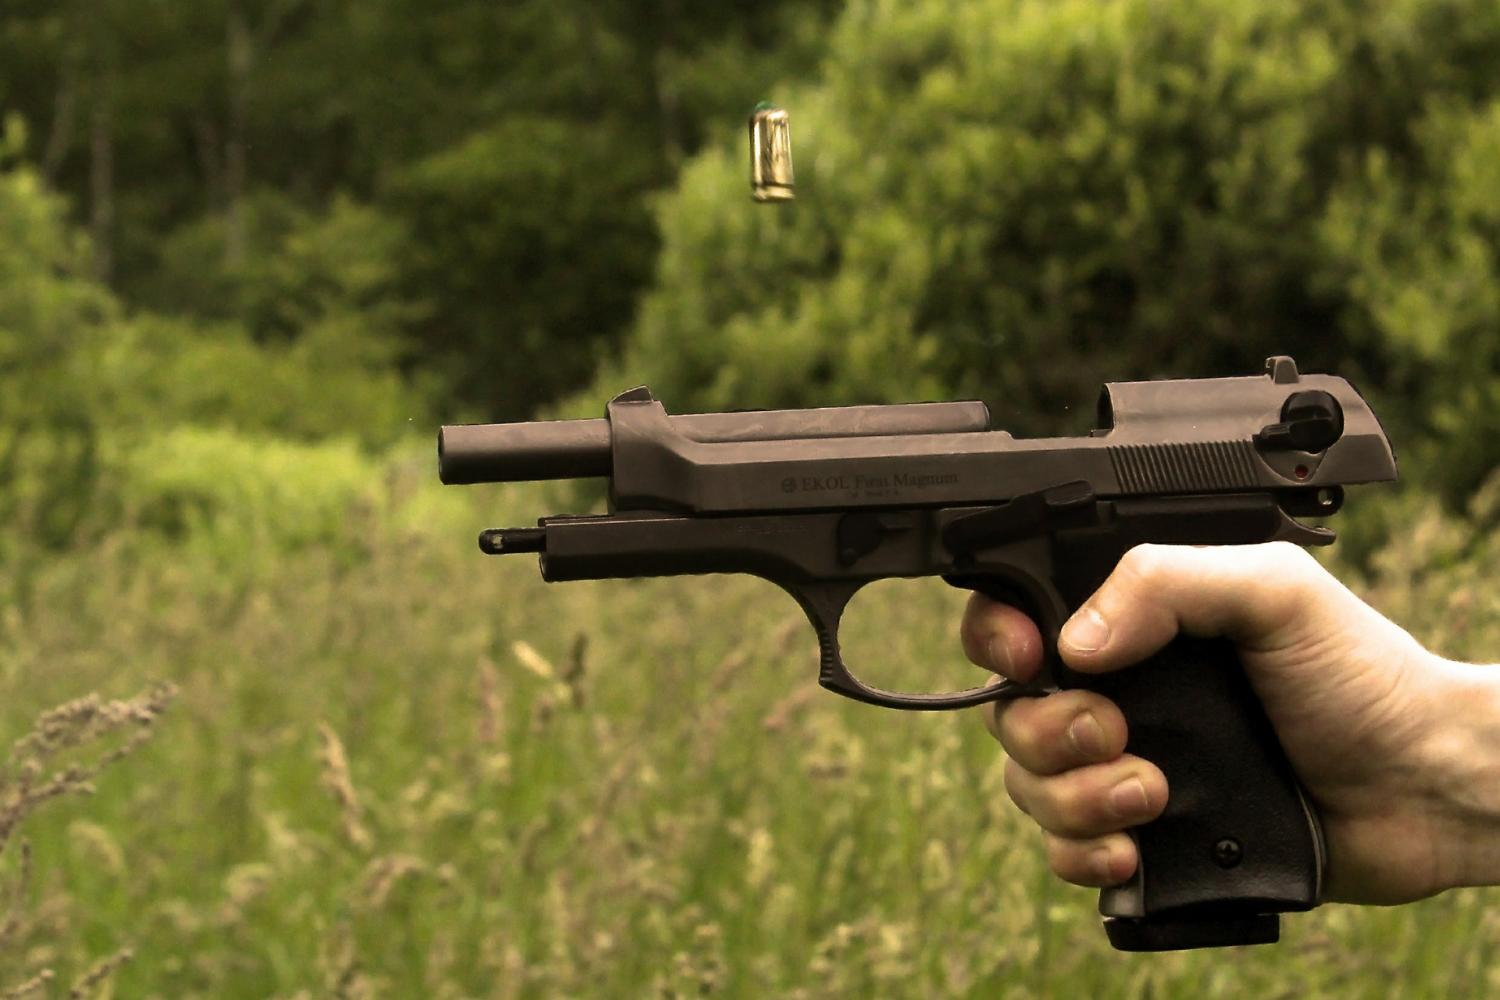 State gun laws may help curb violence across state lines